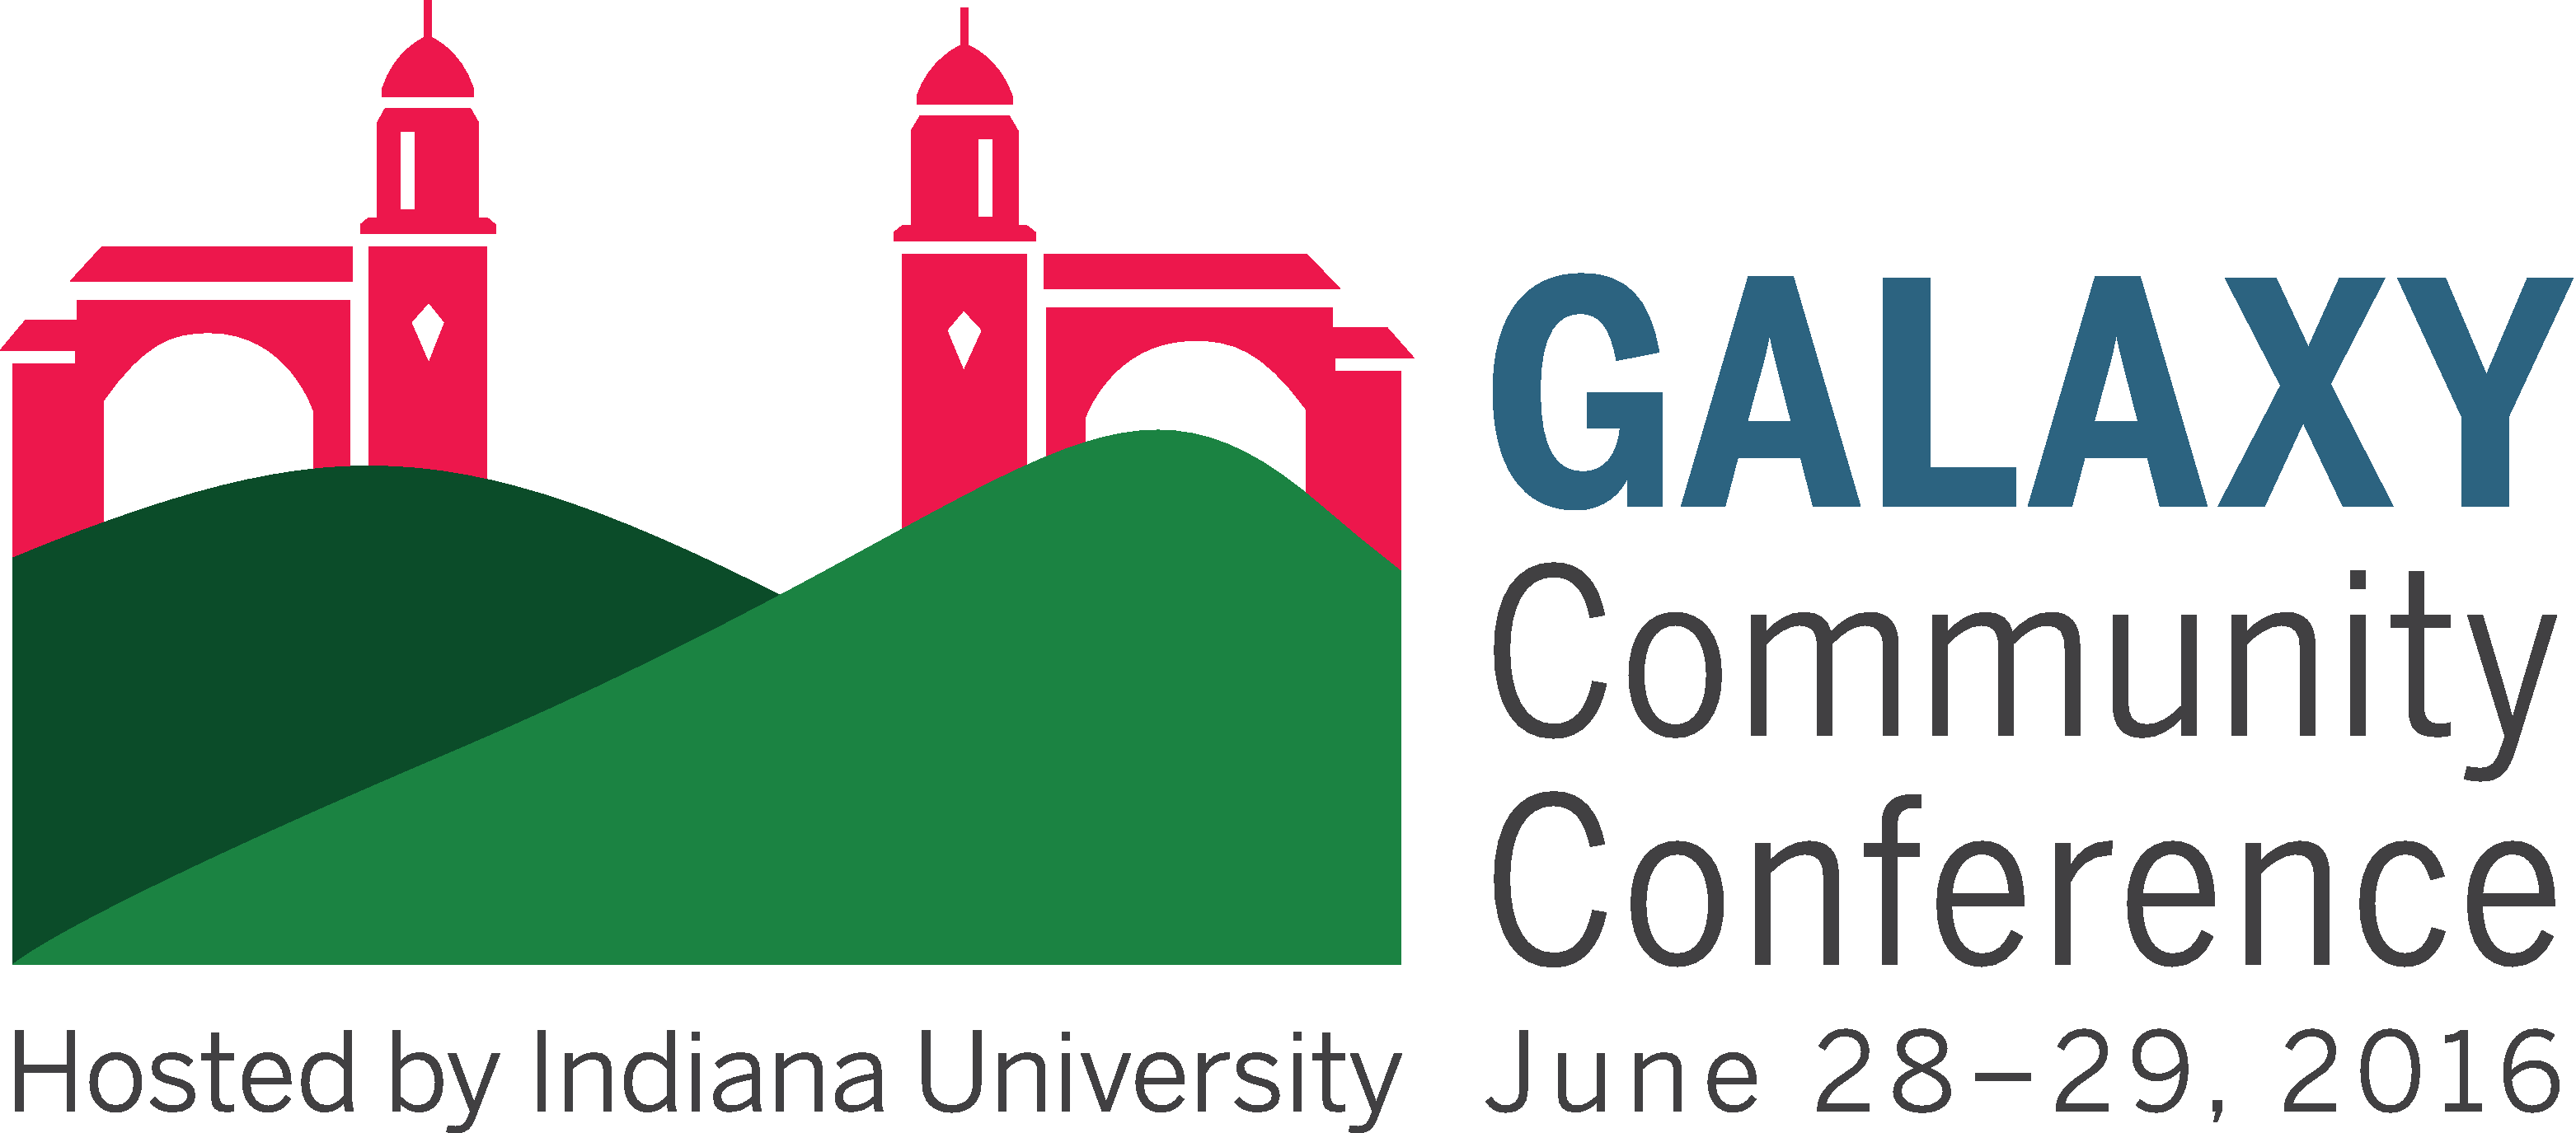 2016 Galaxy Community Conference (GCC2016)